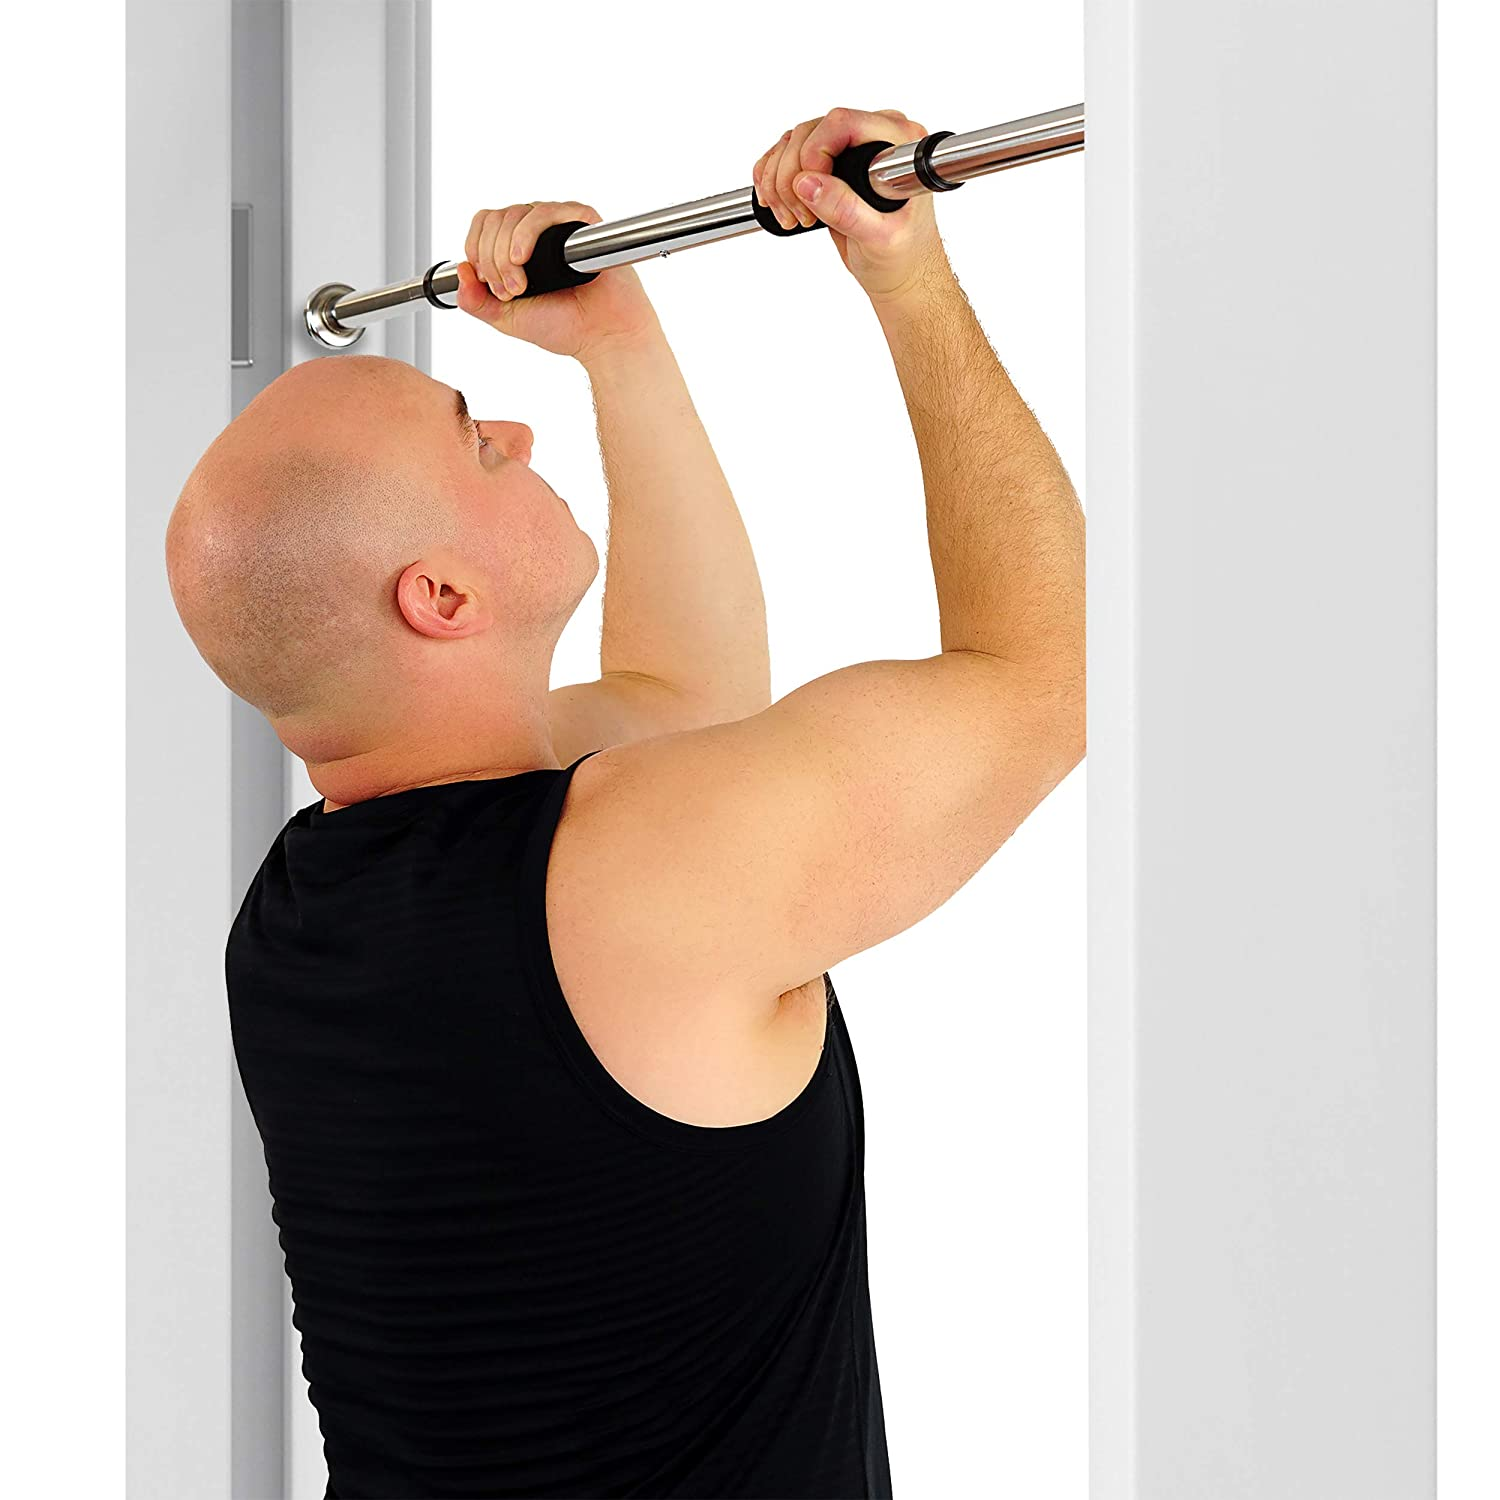 419504aedfd Amazon.com   Sunny Health   Fitness Door Way Chin Up and Pull Up Bar   Pull  Up Bars   Sports   Outdoors